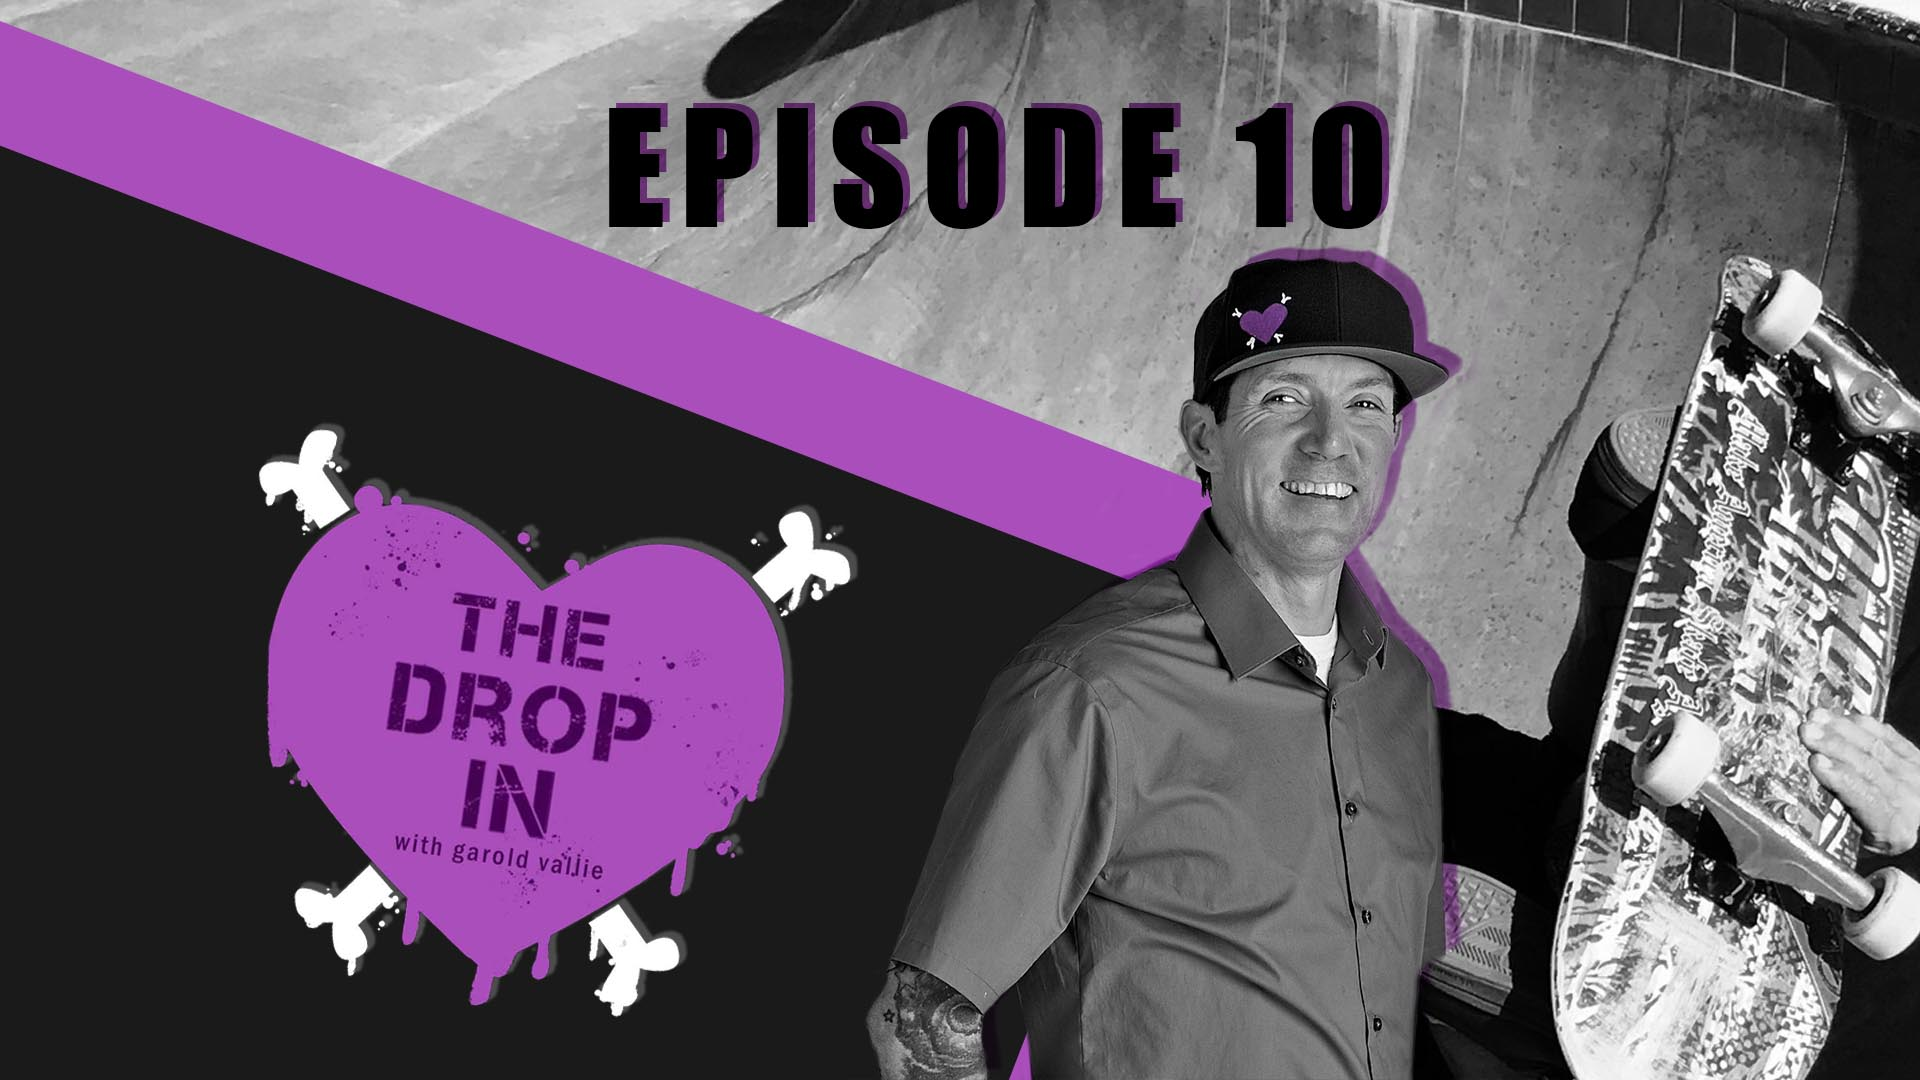 The Drop In with Garold Vallie - Episode 10